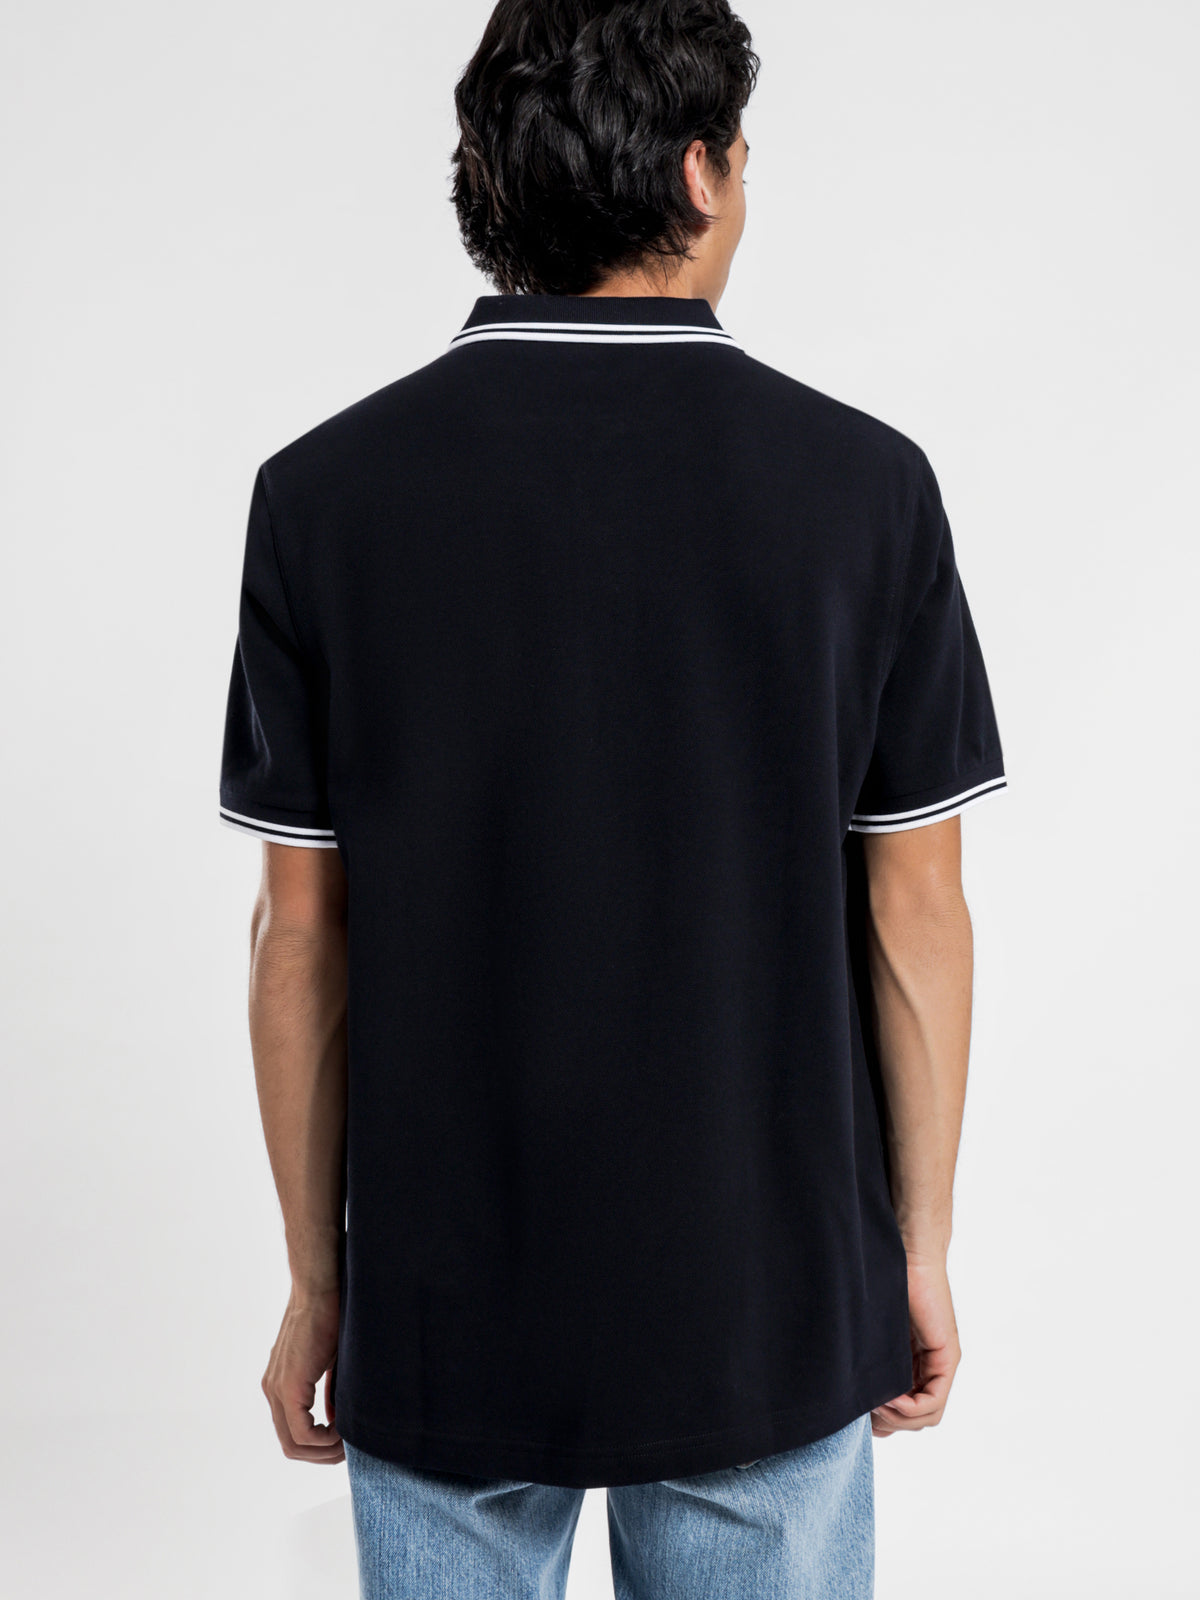 Twin Tipped Fred Perry T-Shirt in Navy & White